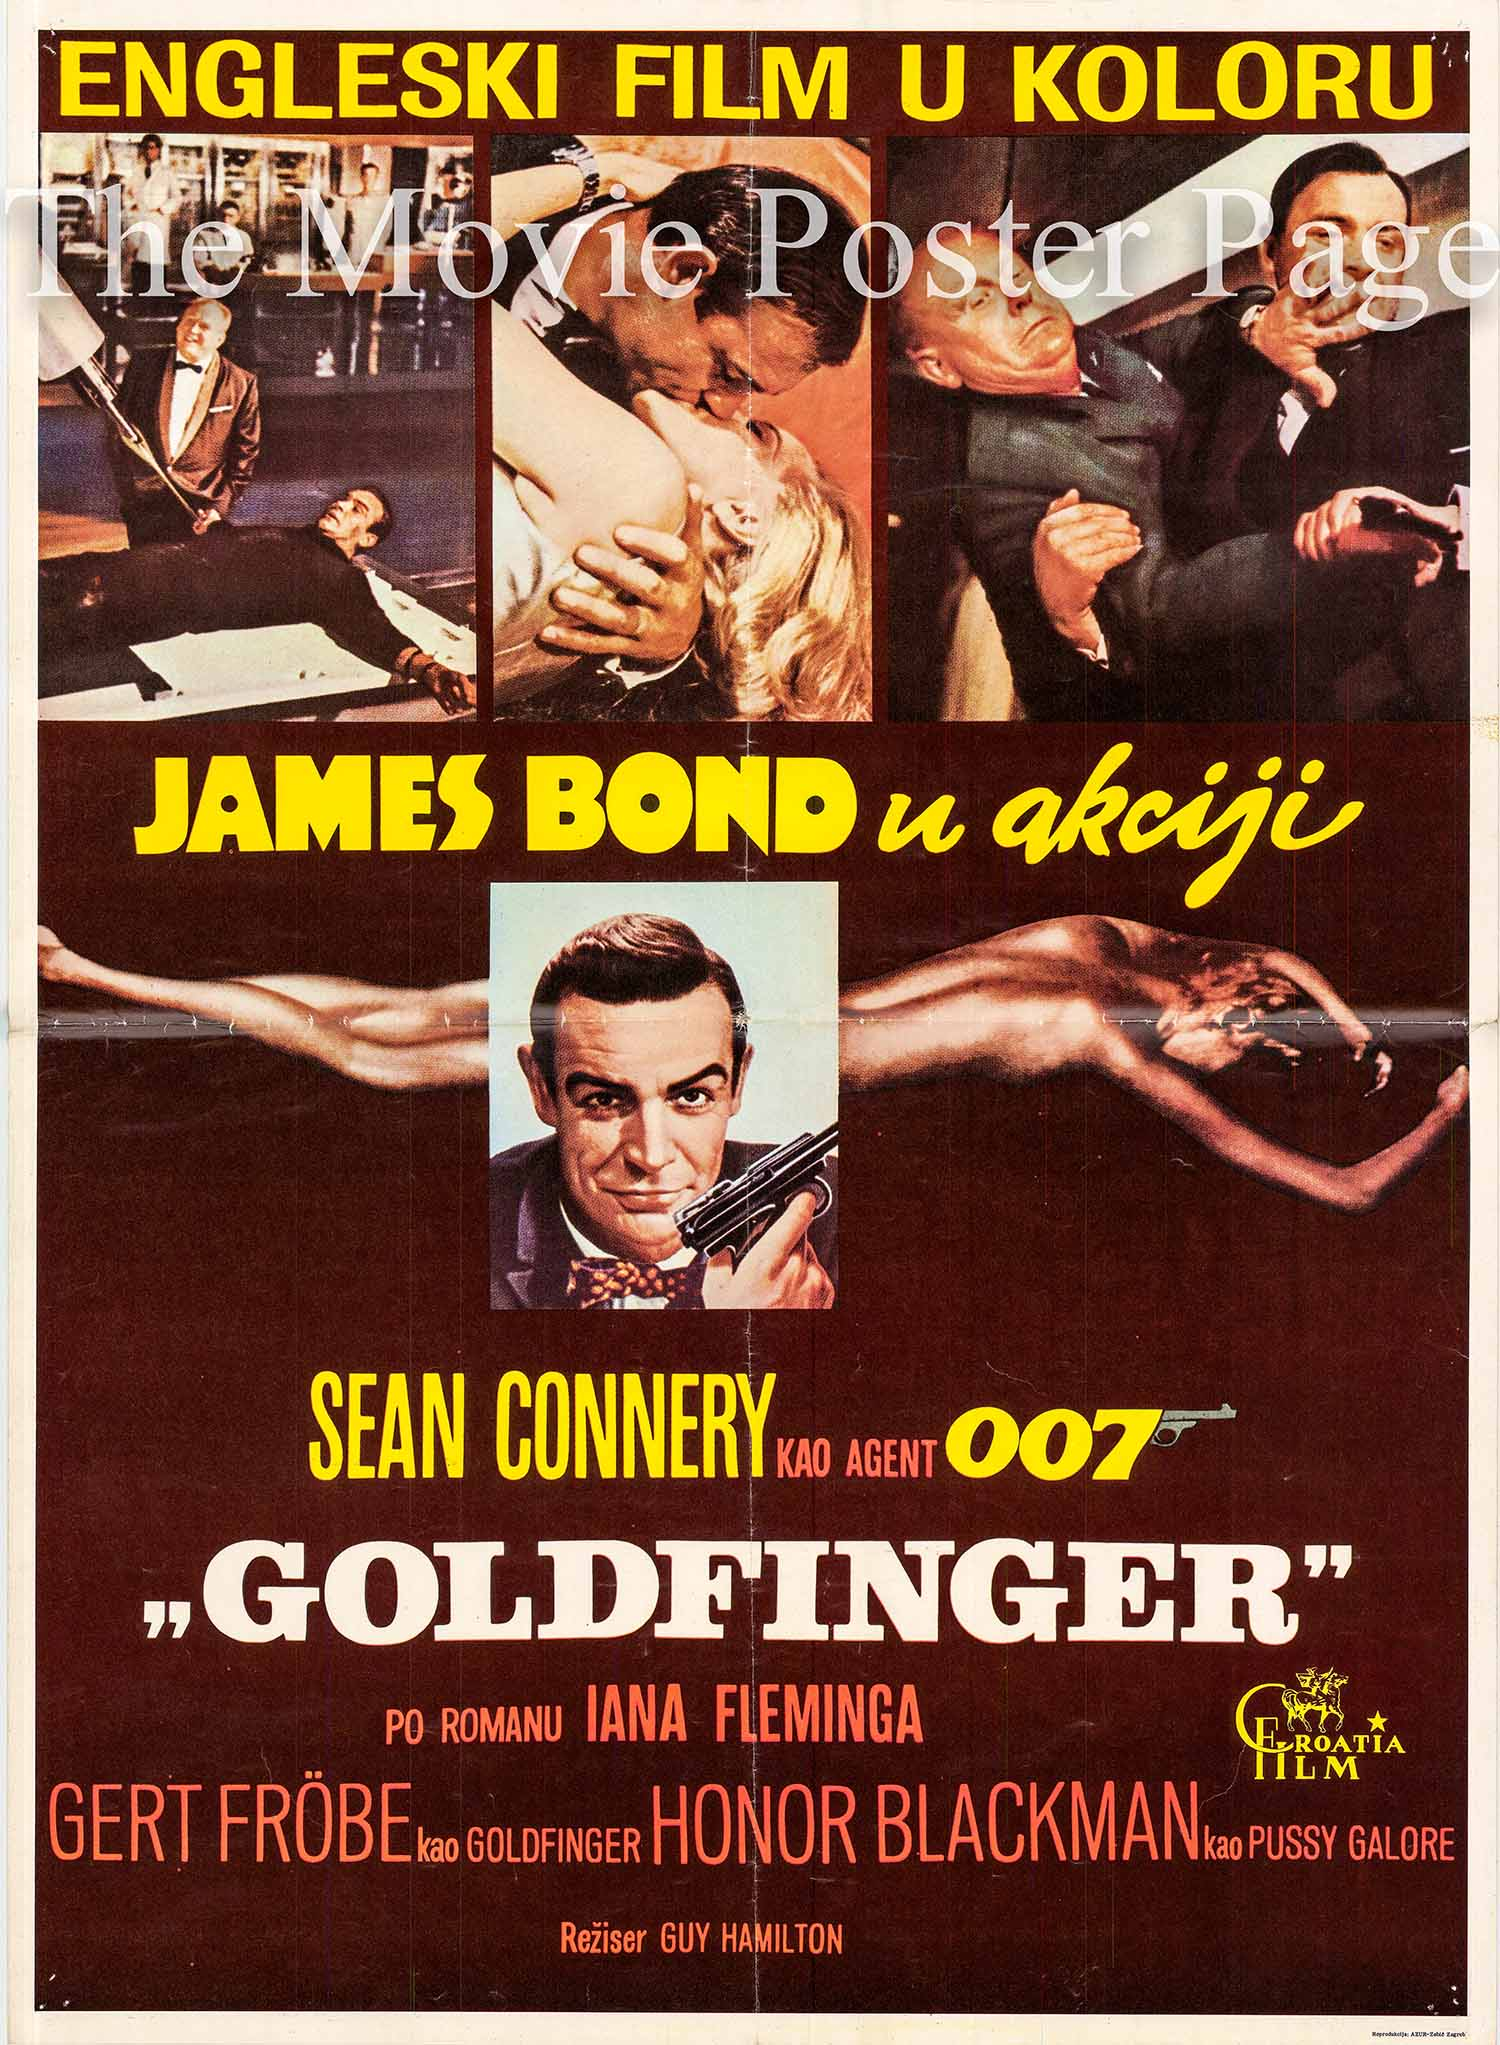 Pictured is a Yugoslavian promotional poster for the 1965 Guy Hamilton film Goldfinger starring Sean Connery as James Bond.